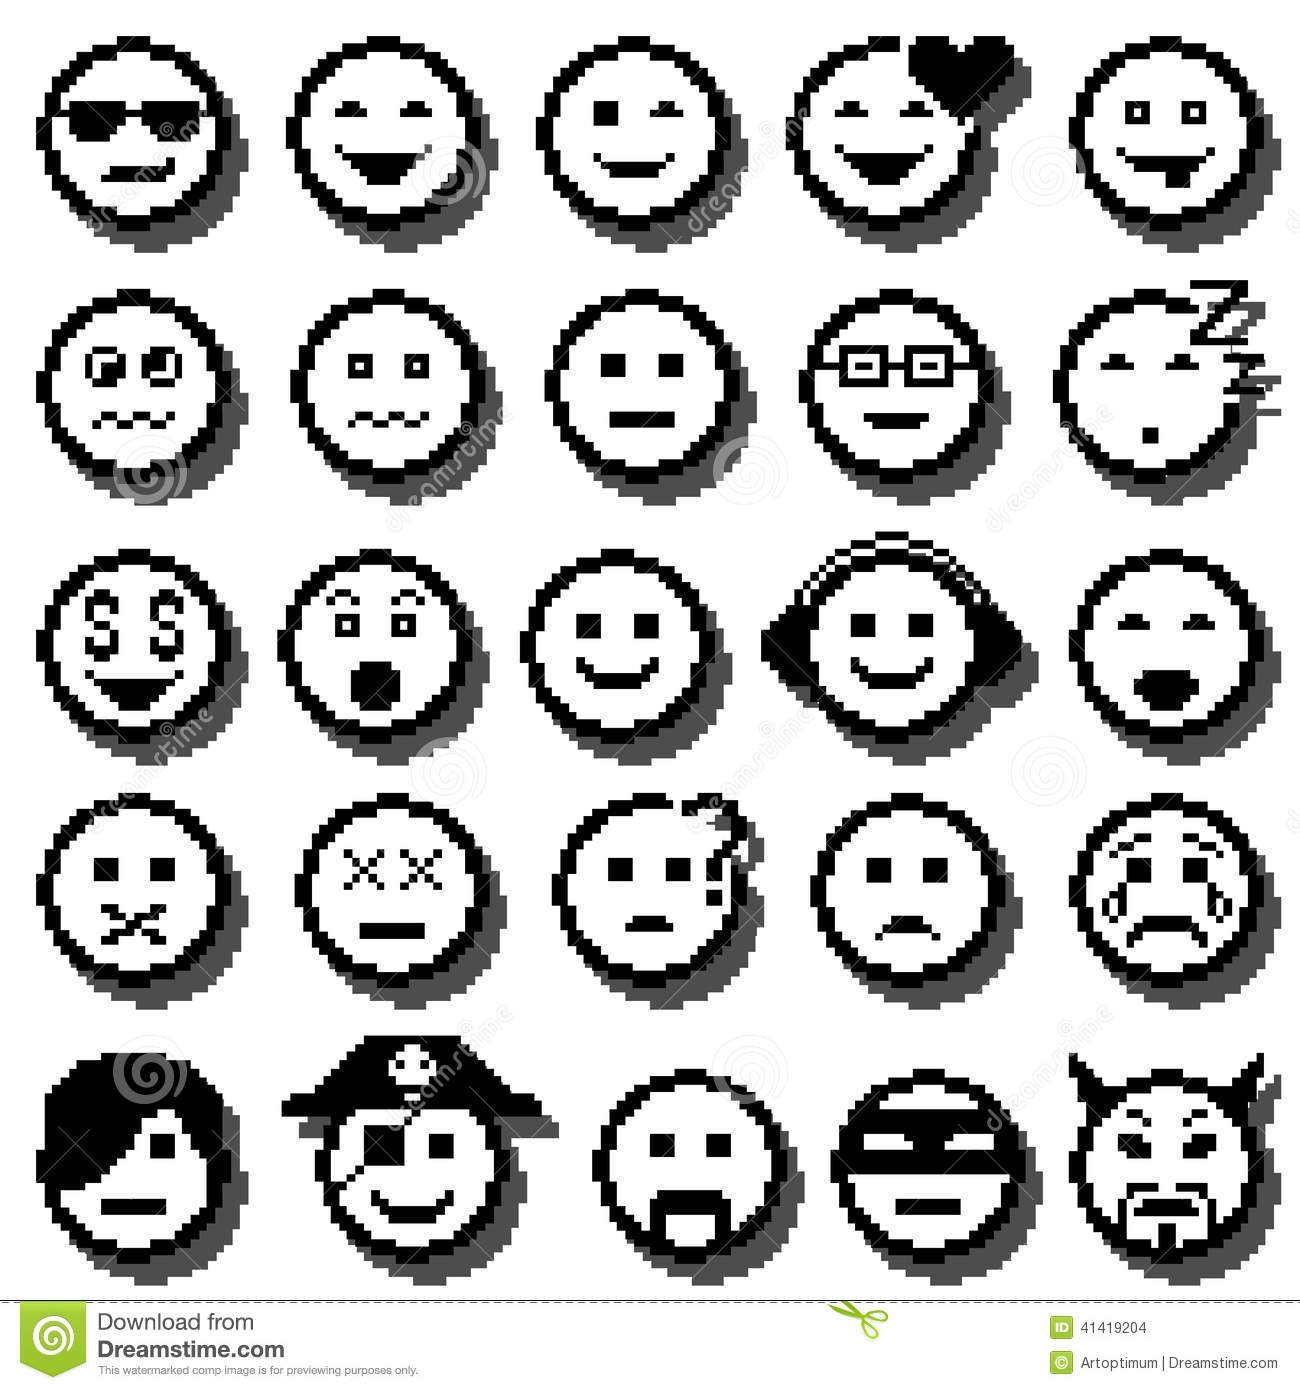 Vector Icons Of Smiley Faces Pixel Art Illustration